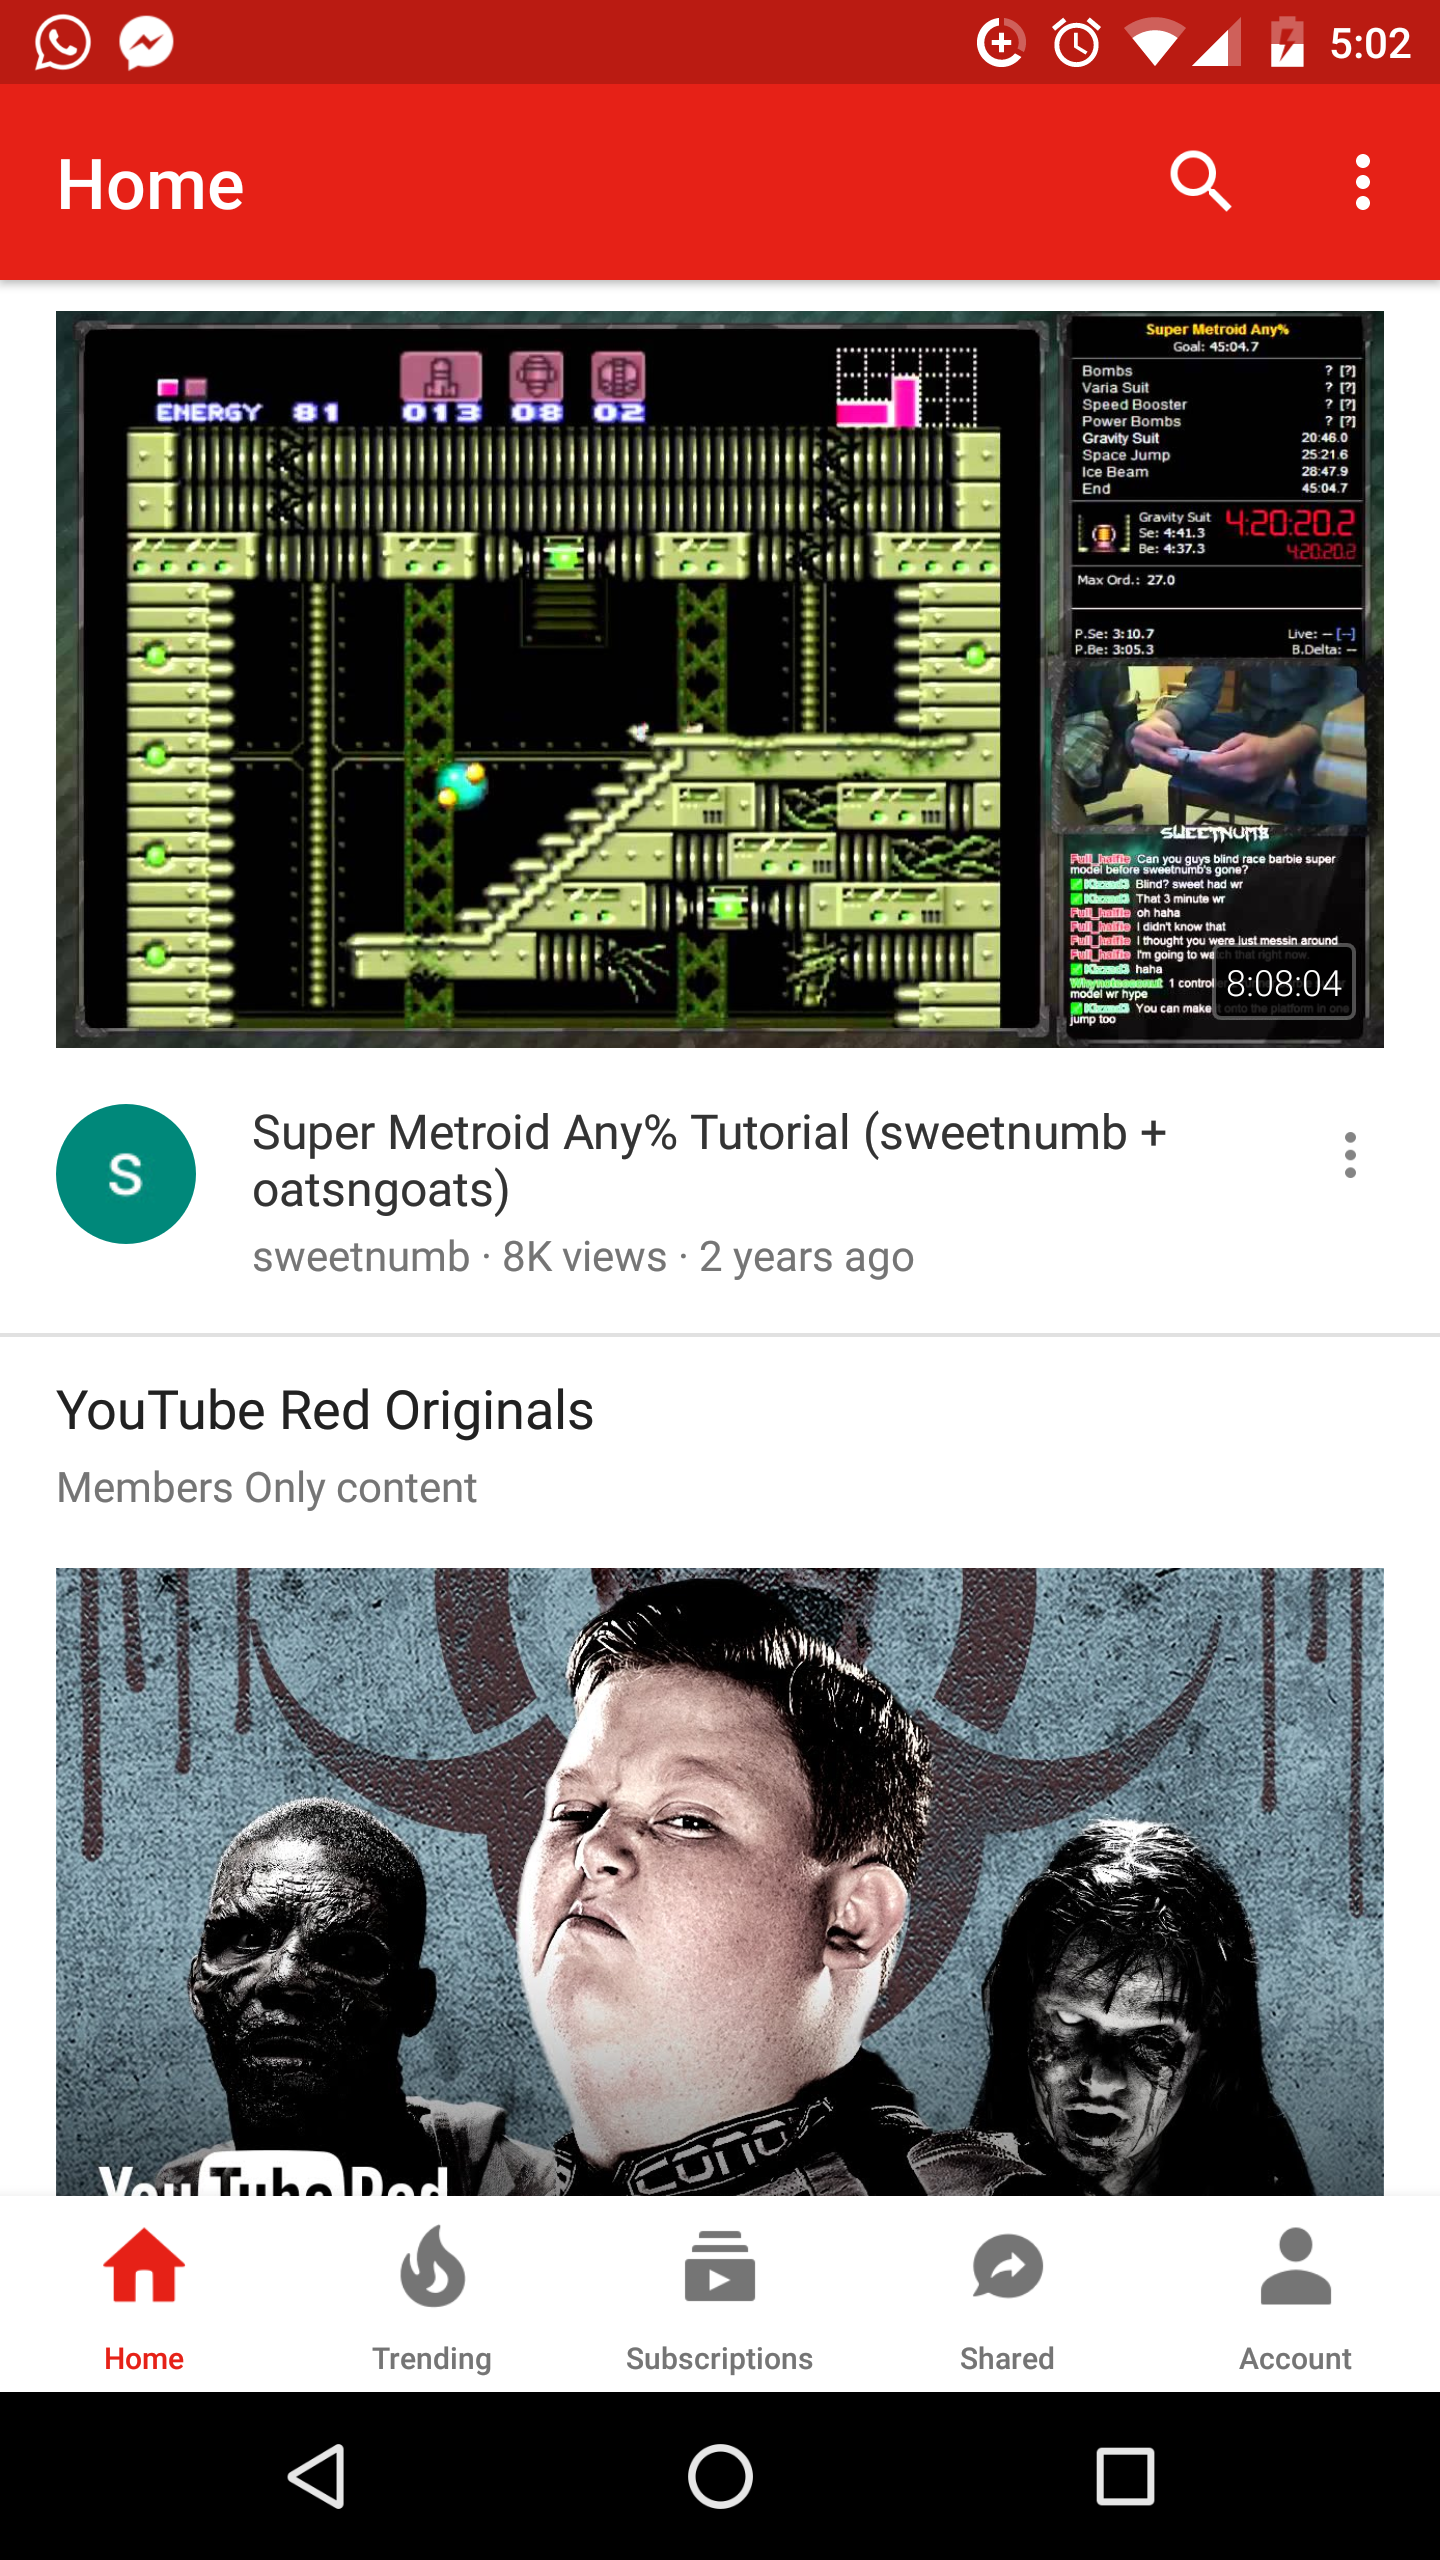 New YouTube UI with navigation bar on bottom rolling out